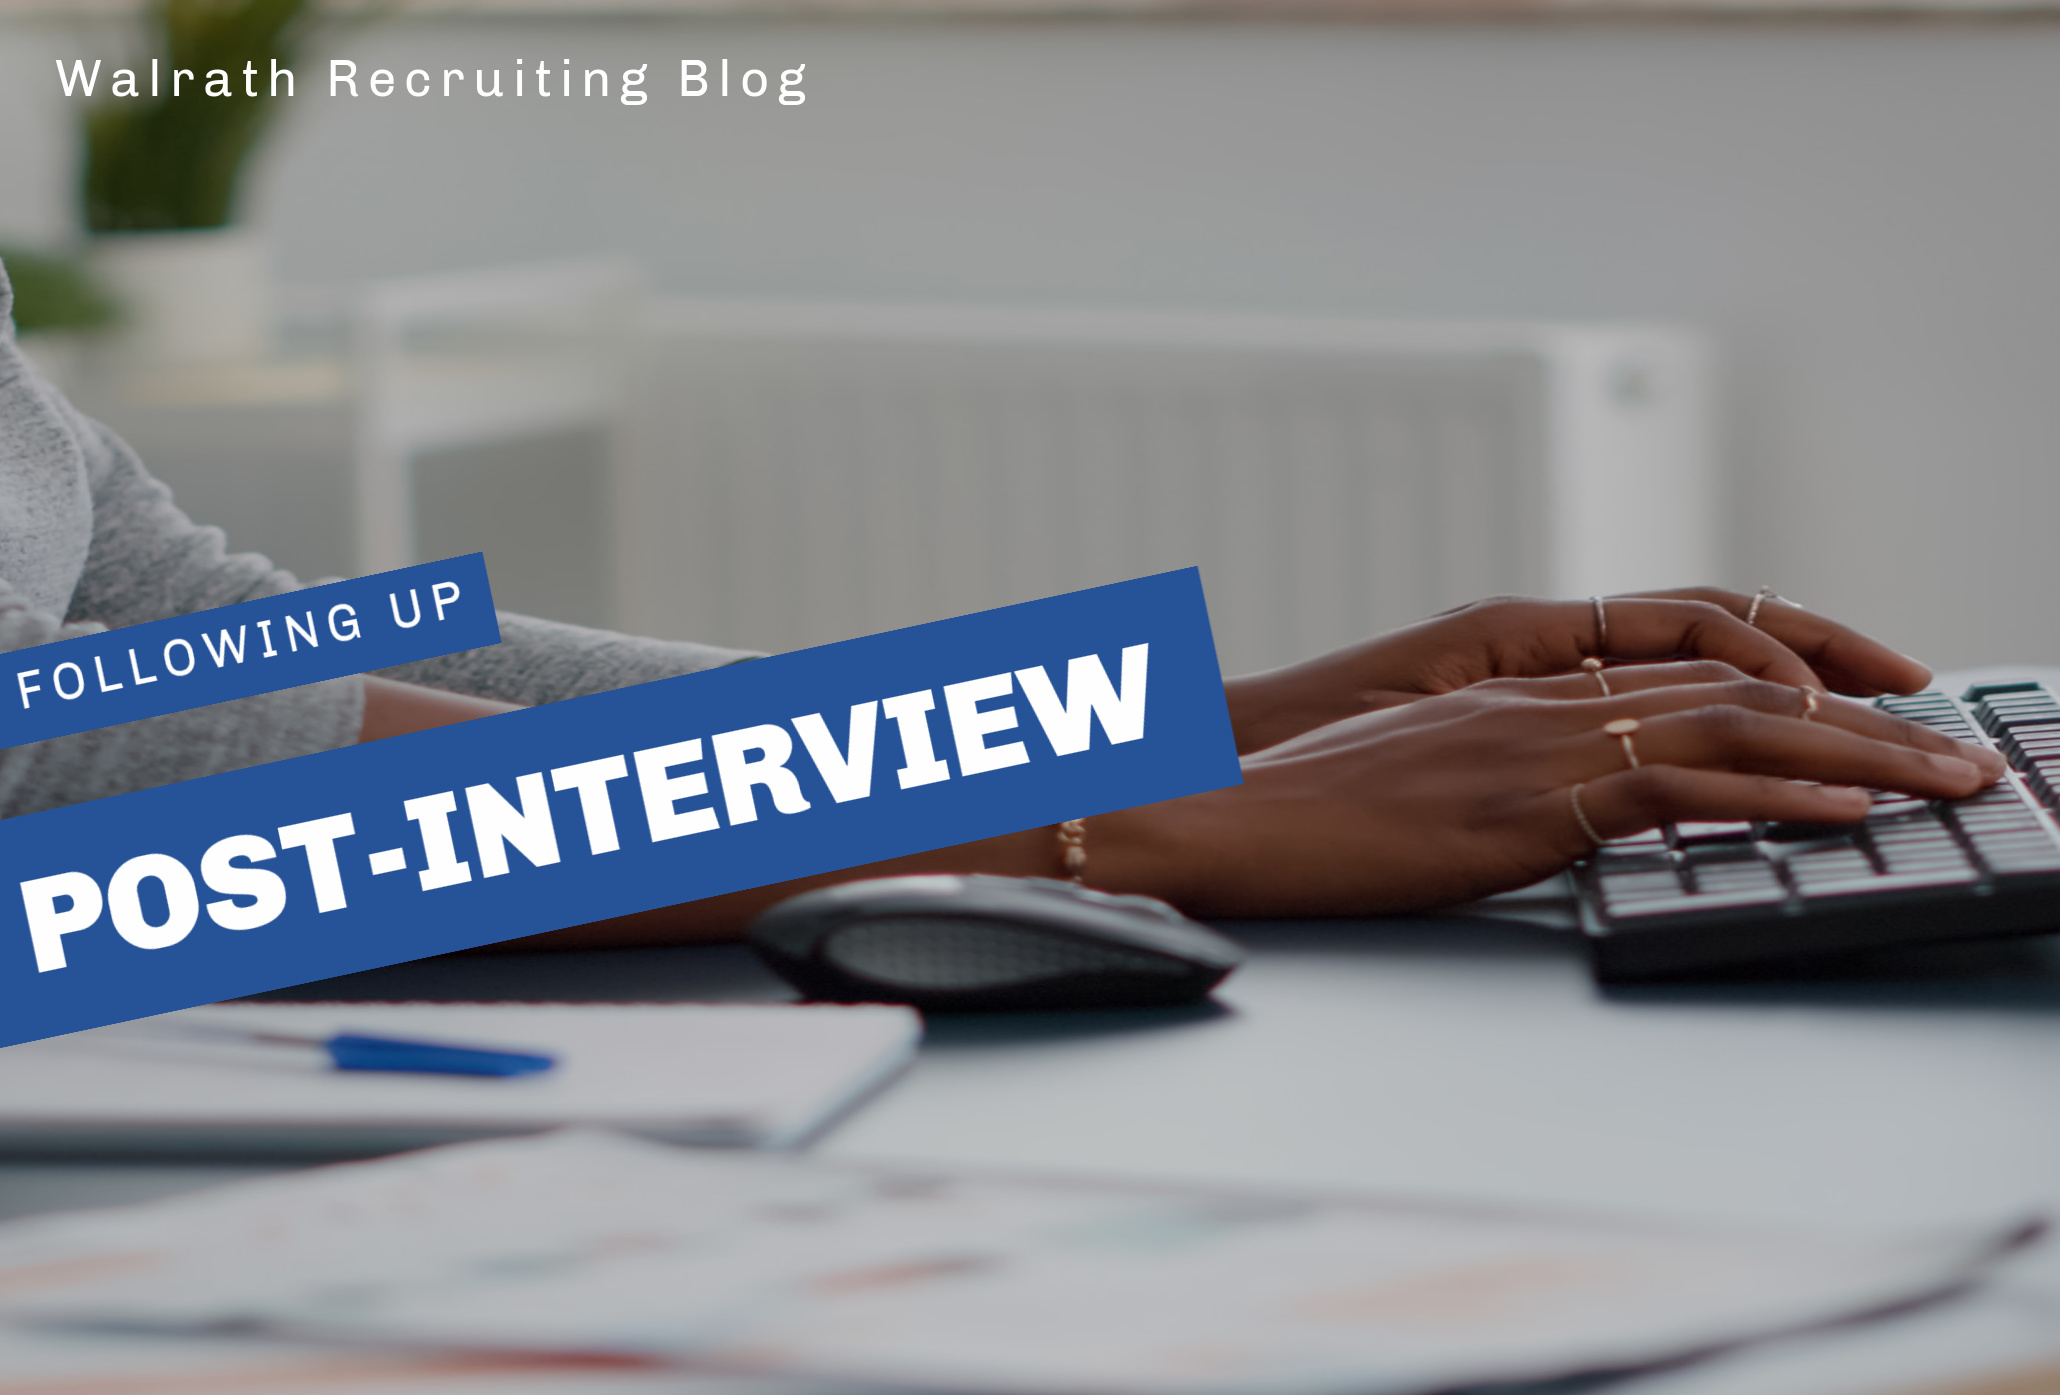 Learn how to properly follow up after an interview!